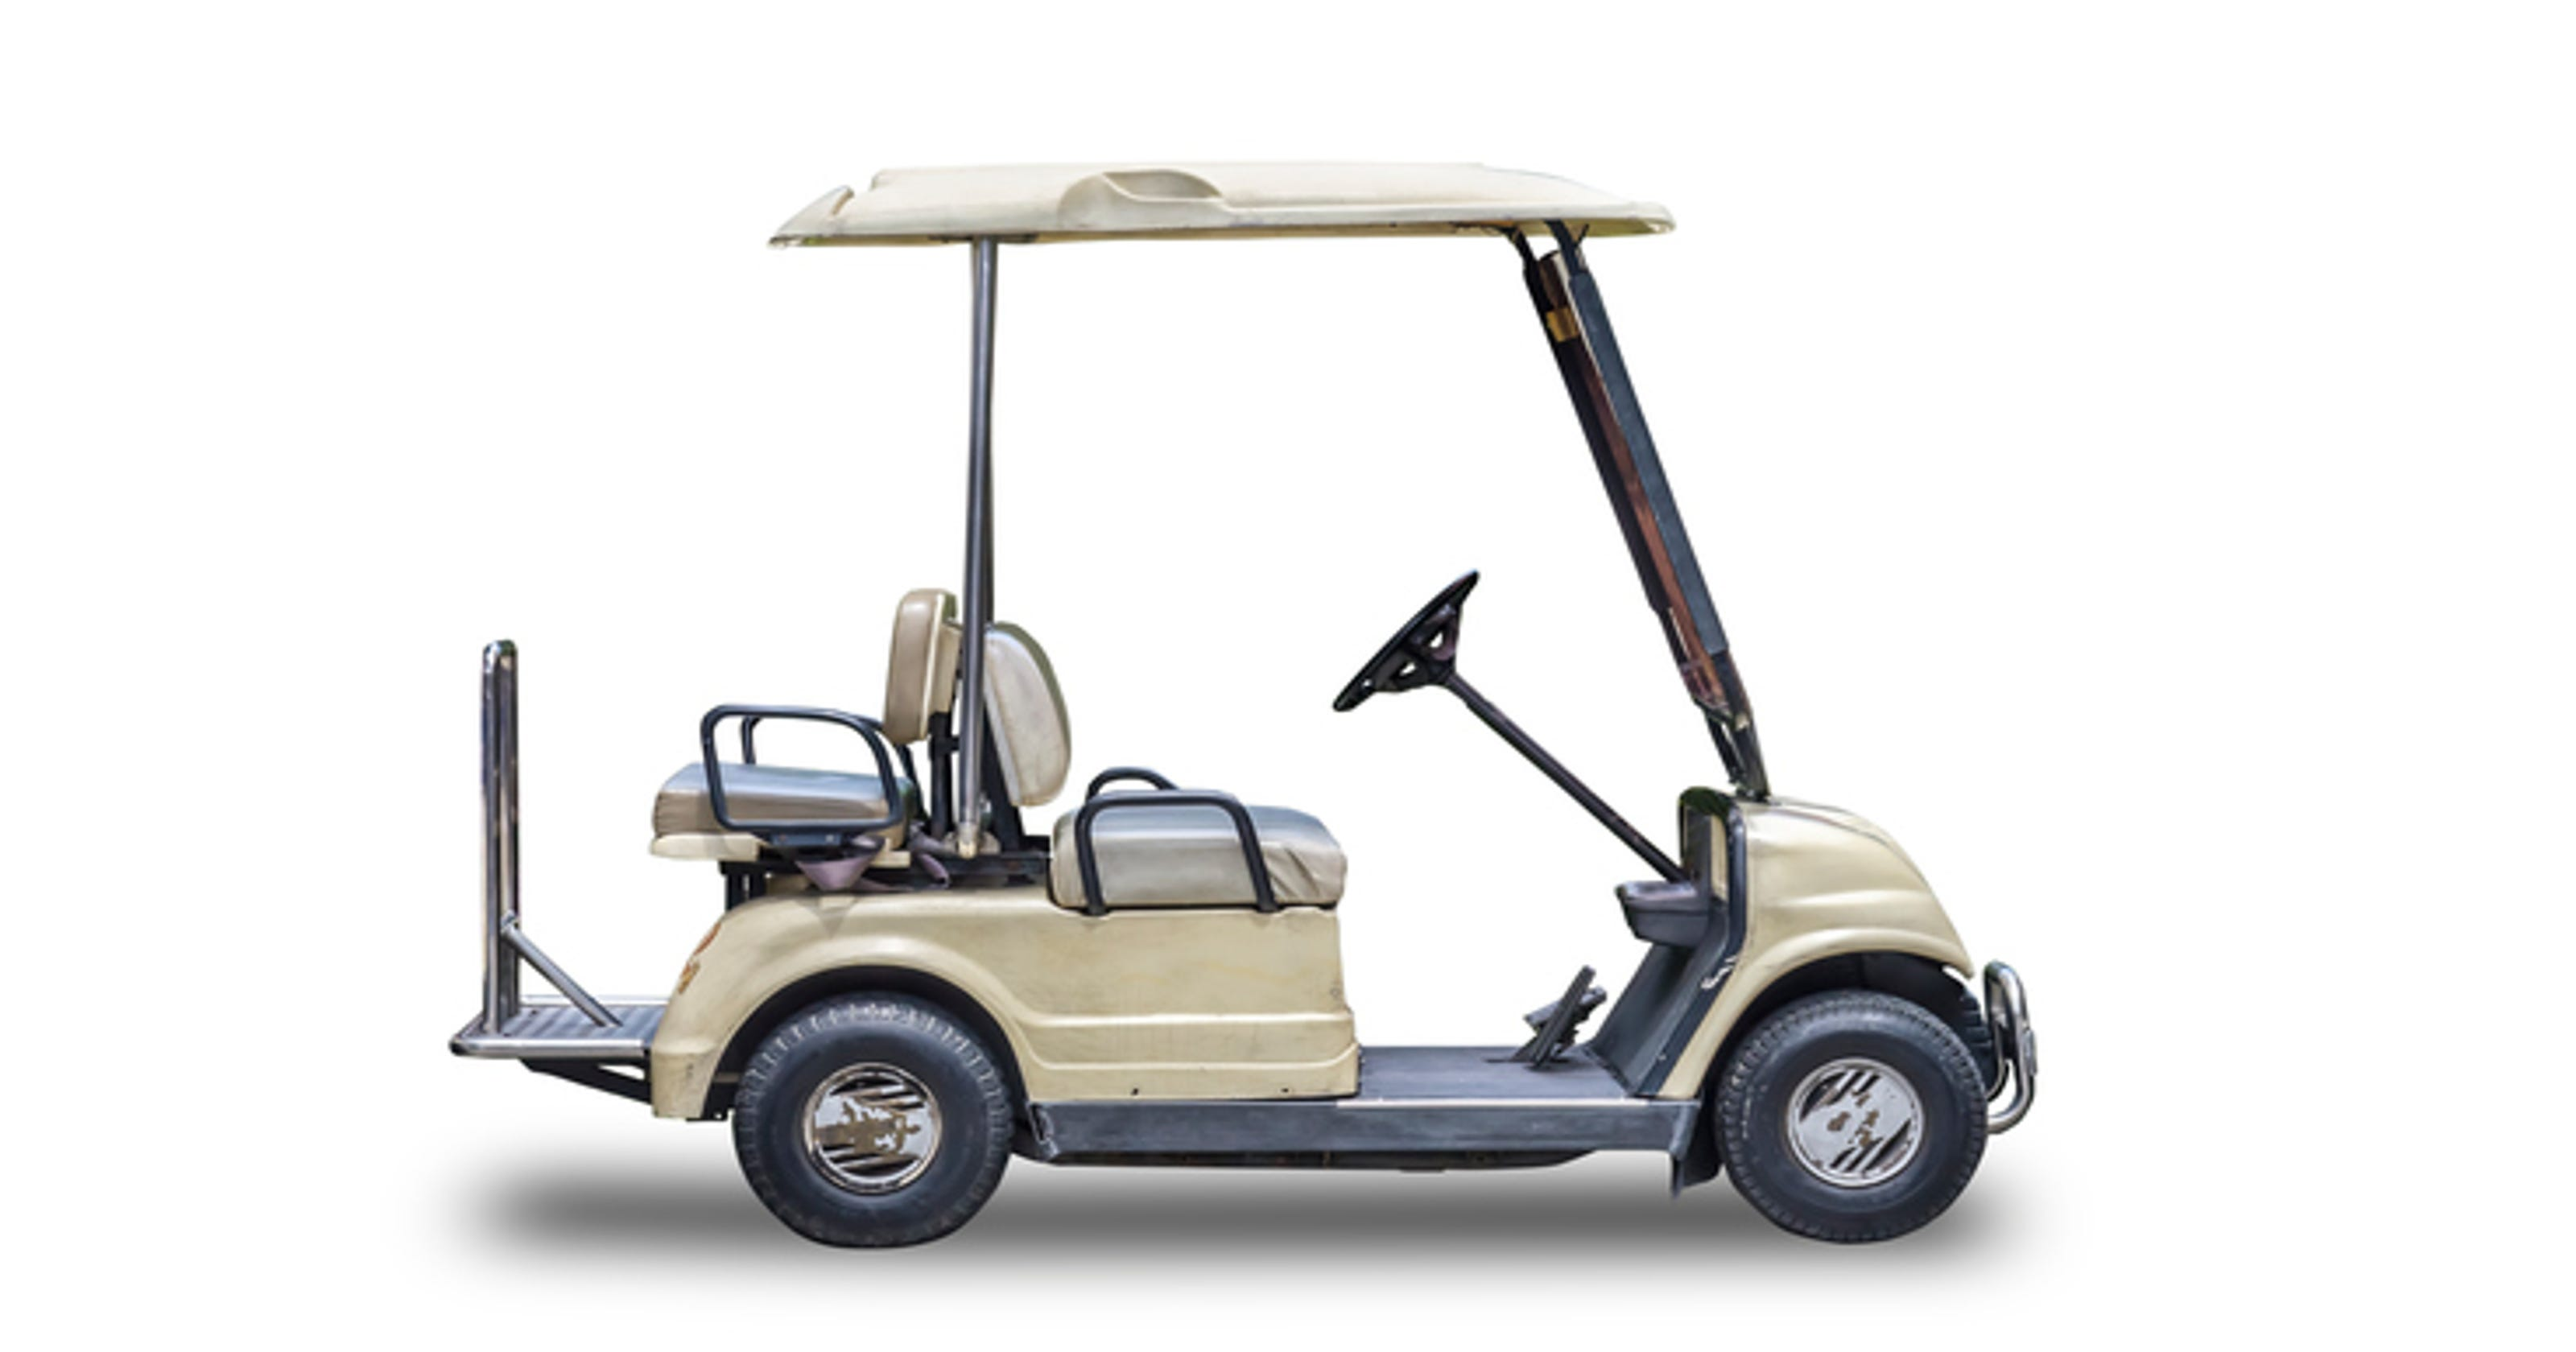 Yonkers golf cart injury may cost county $1.6M on